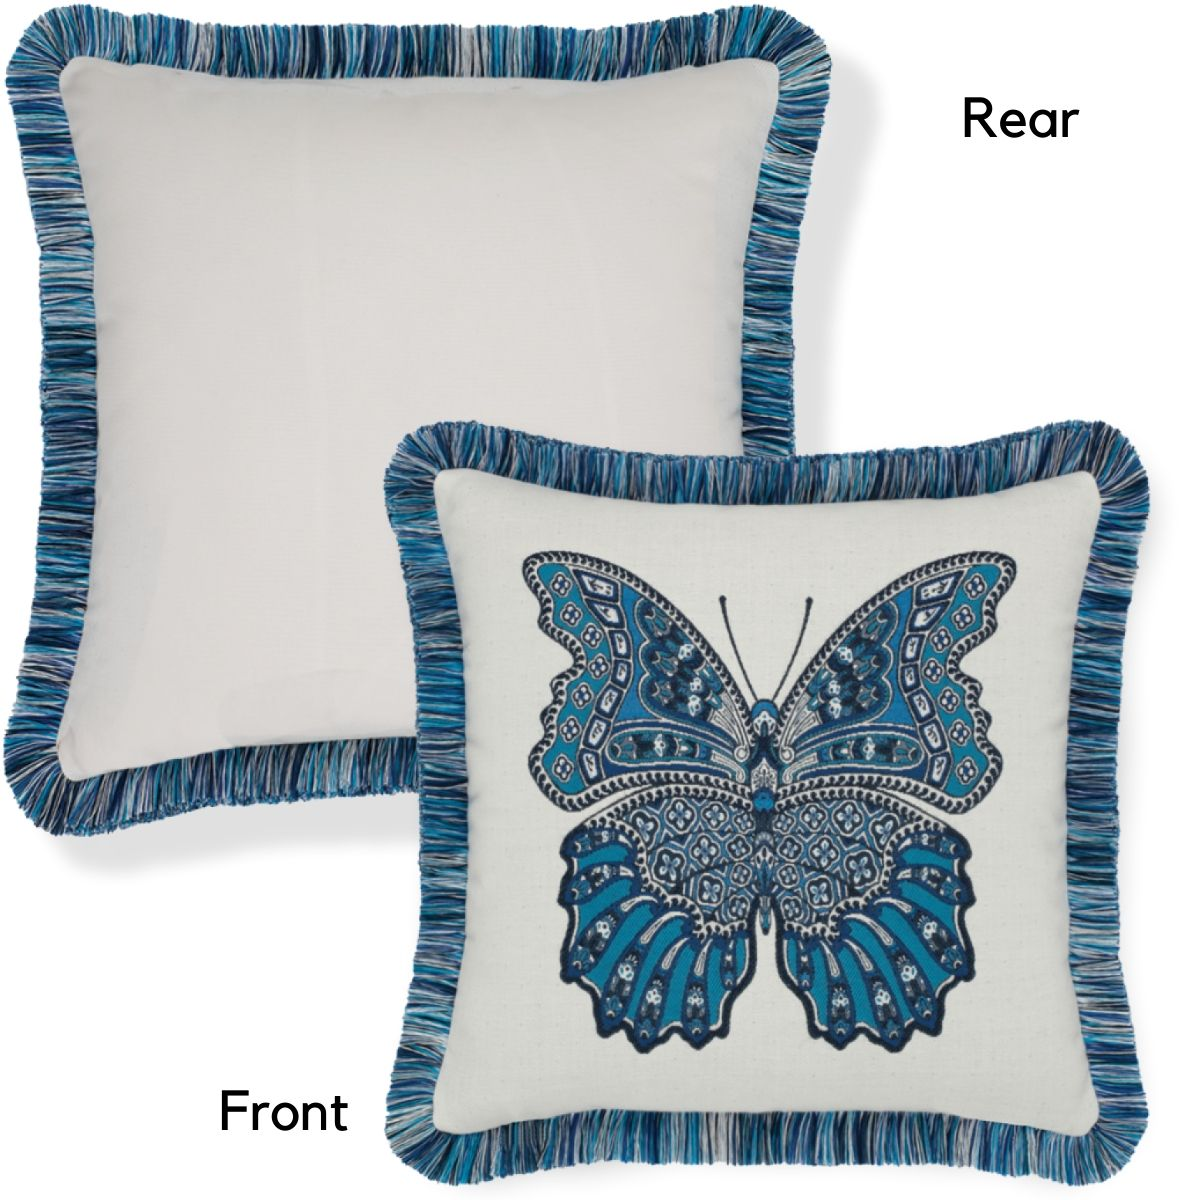 mariposa-azure-elaine-smith-pillow